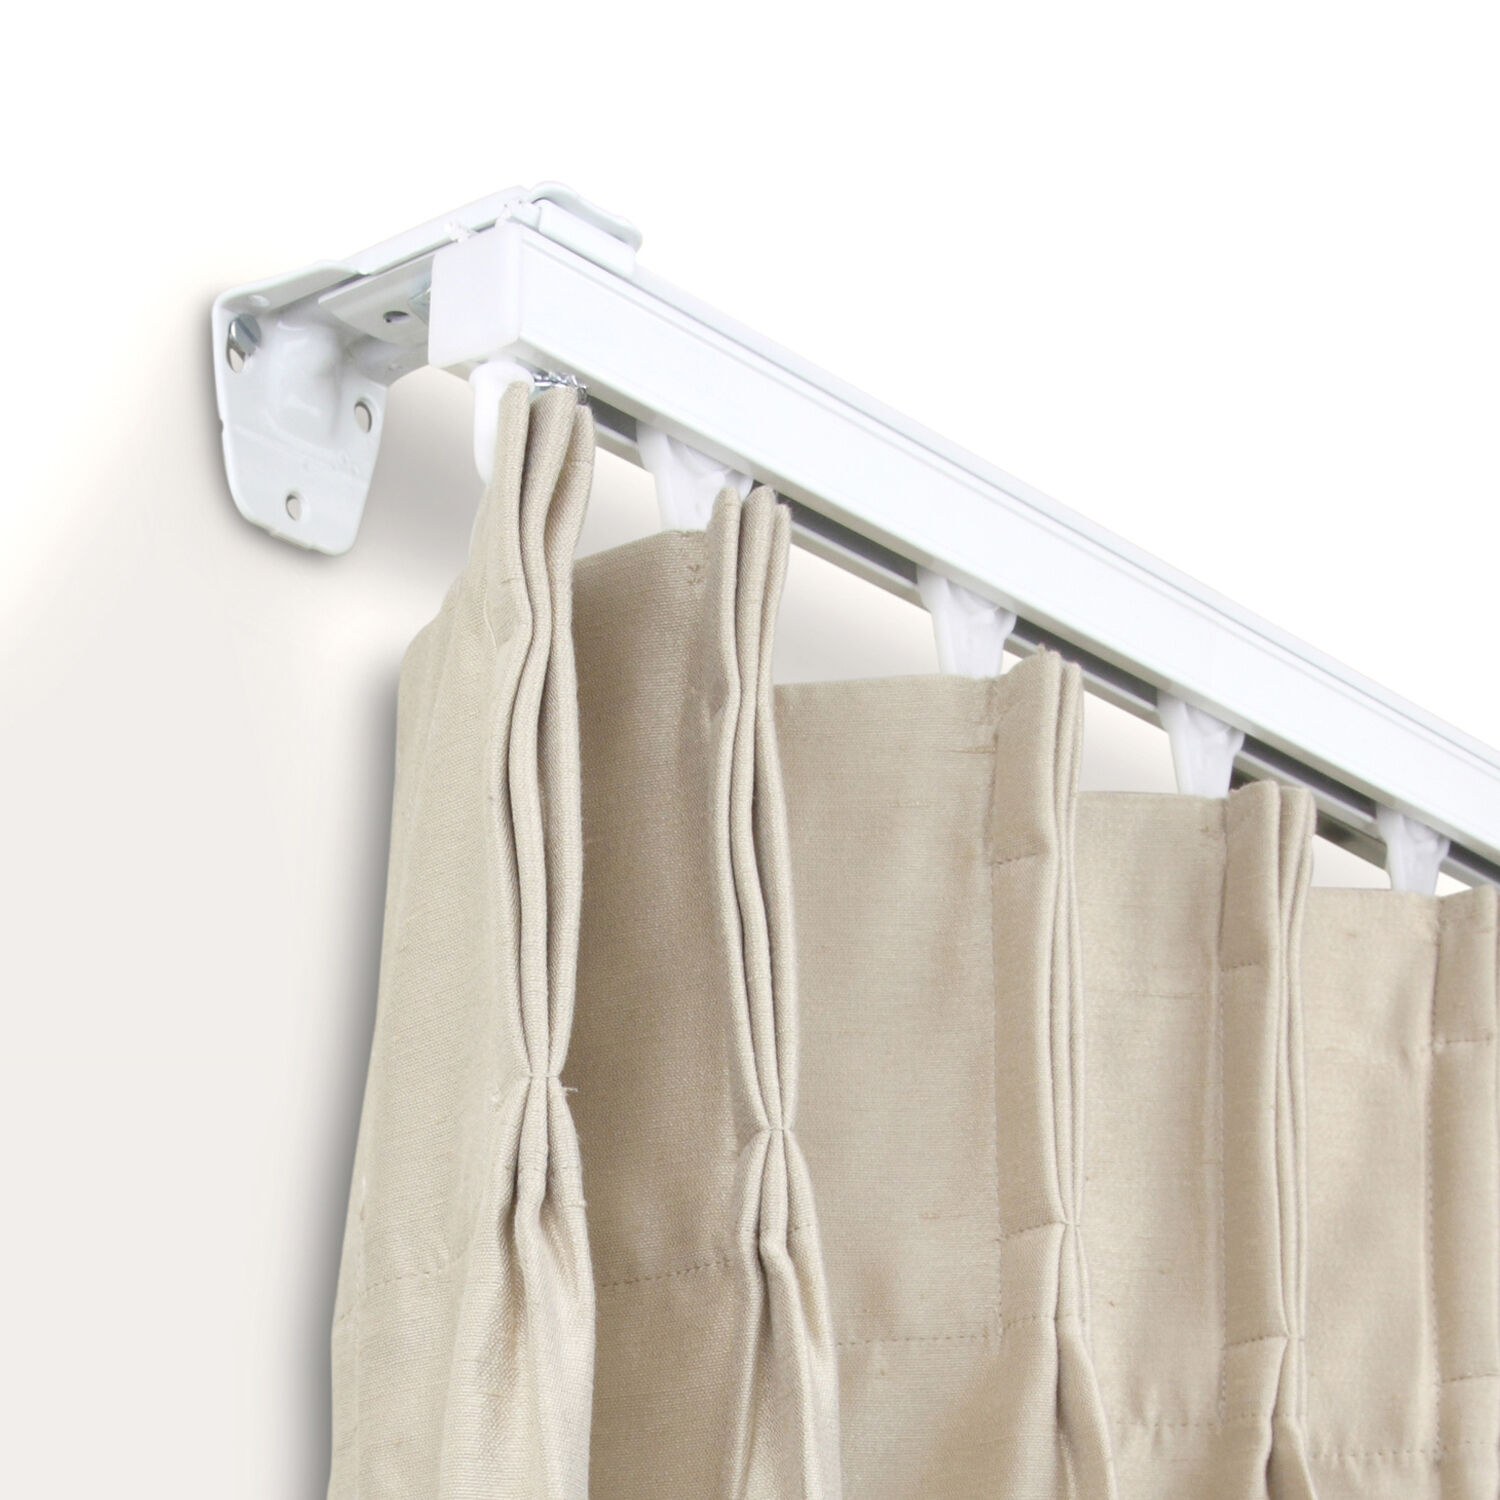 curtain track kit 16 ft composed of two 8ft track white wall mount